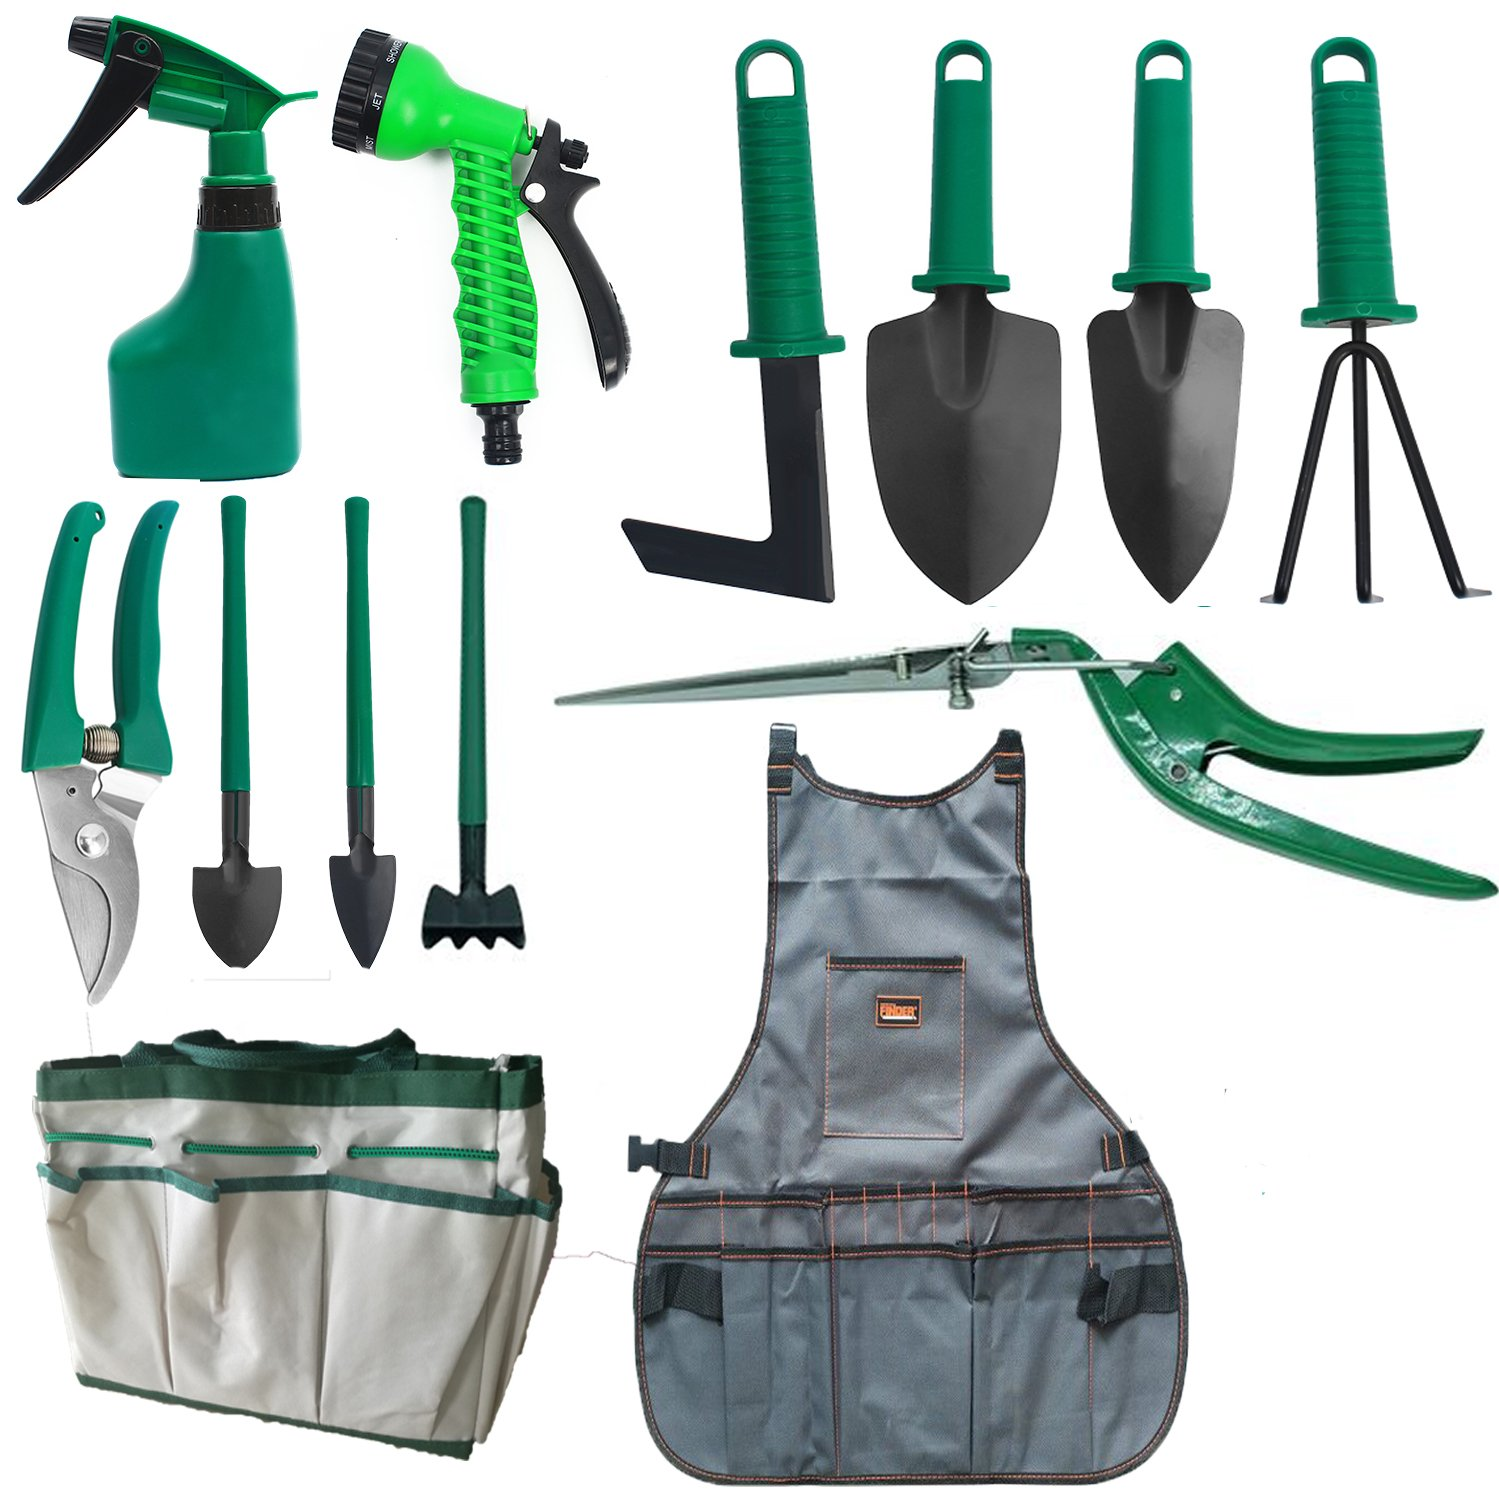 Garden Tool Set 13 Pieces Heavy Duty Gardening Gifts Kit With Garden Tote Bag, Canvas Apron,Pruning Shears - Best Gift For Gardener Father's Day